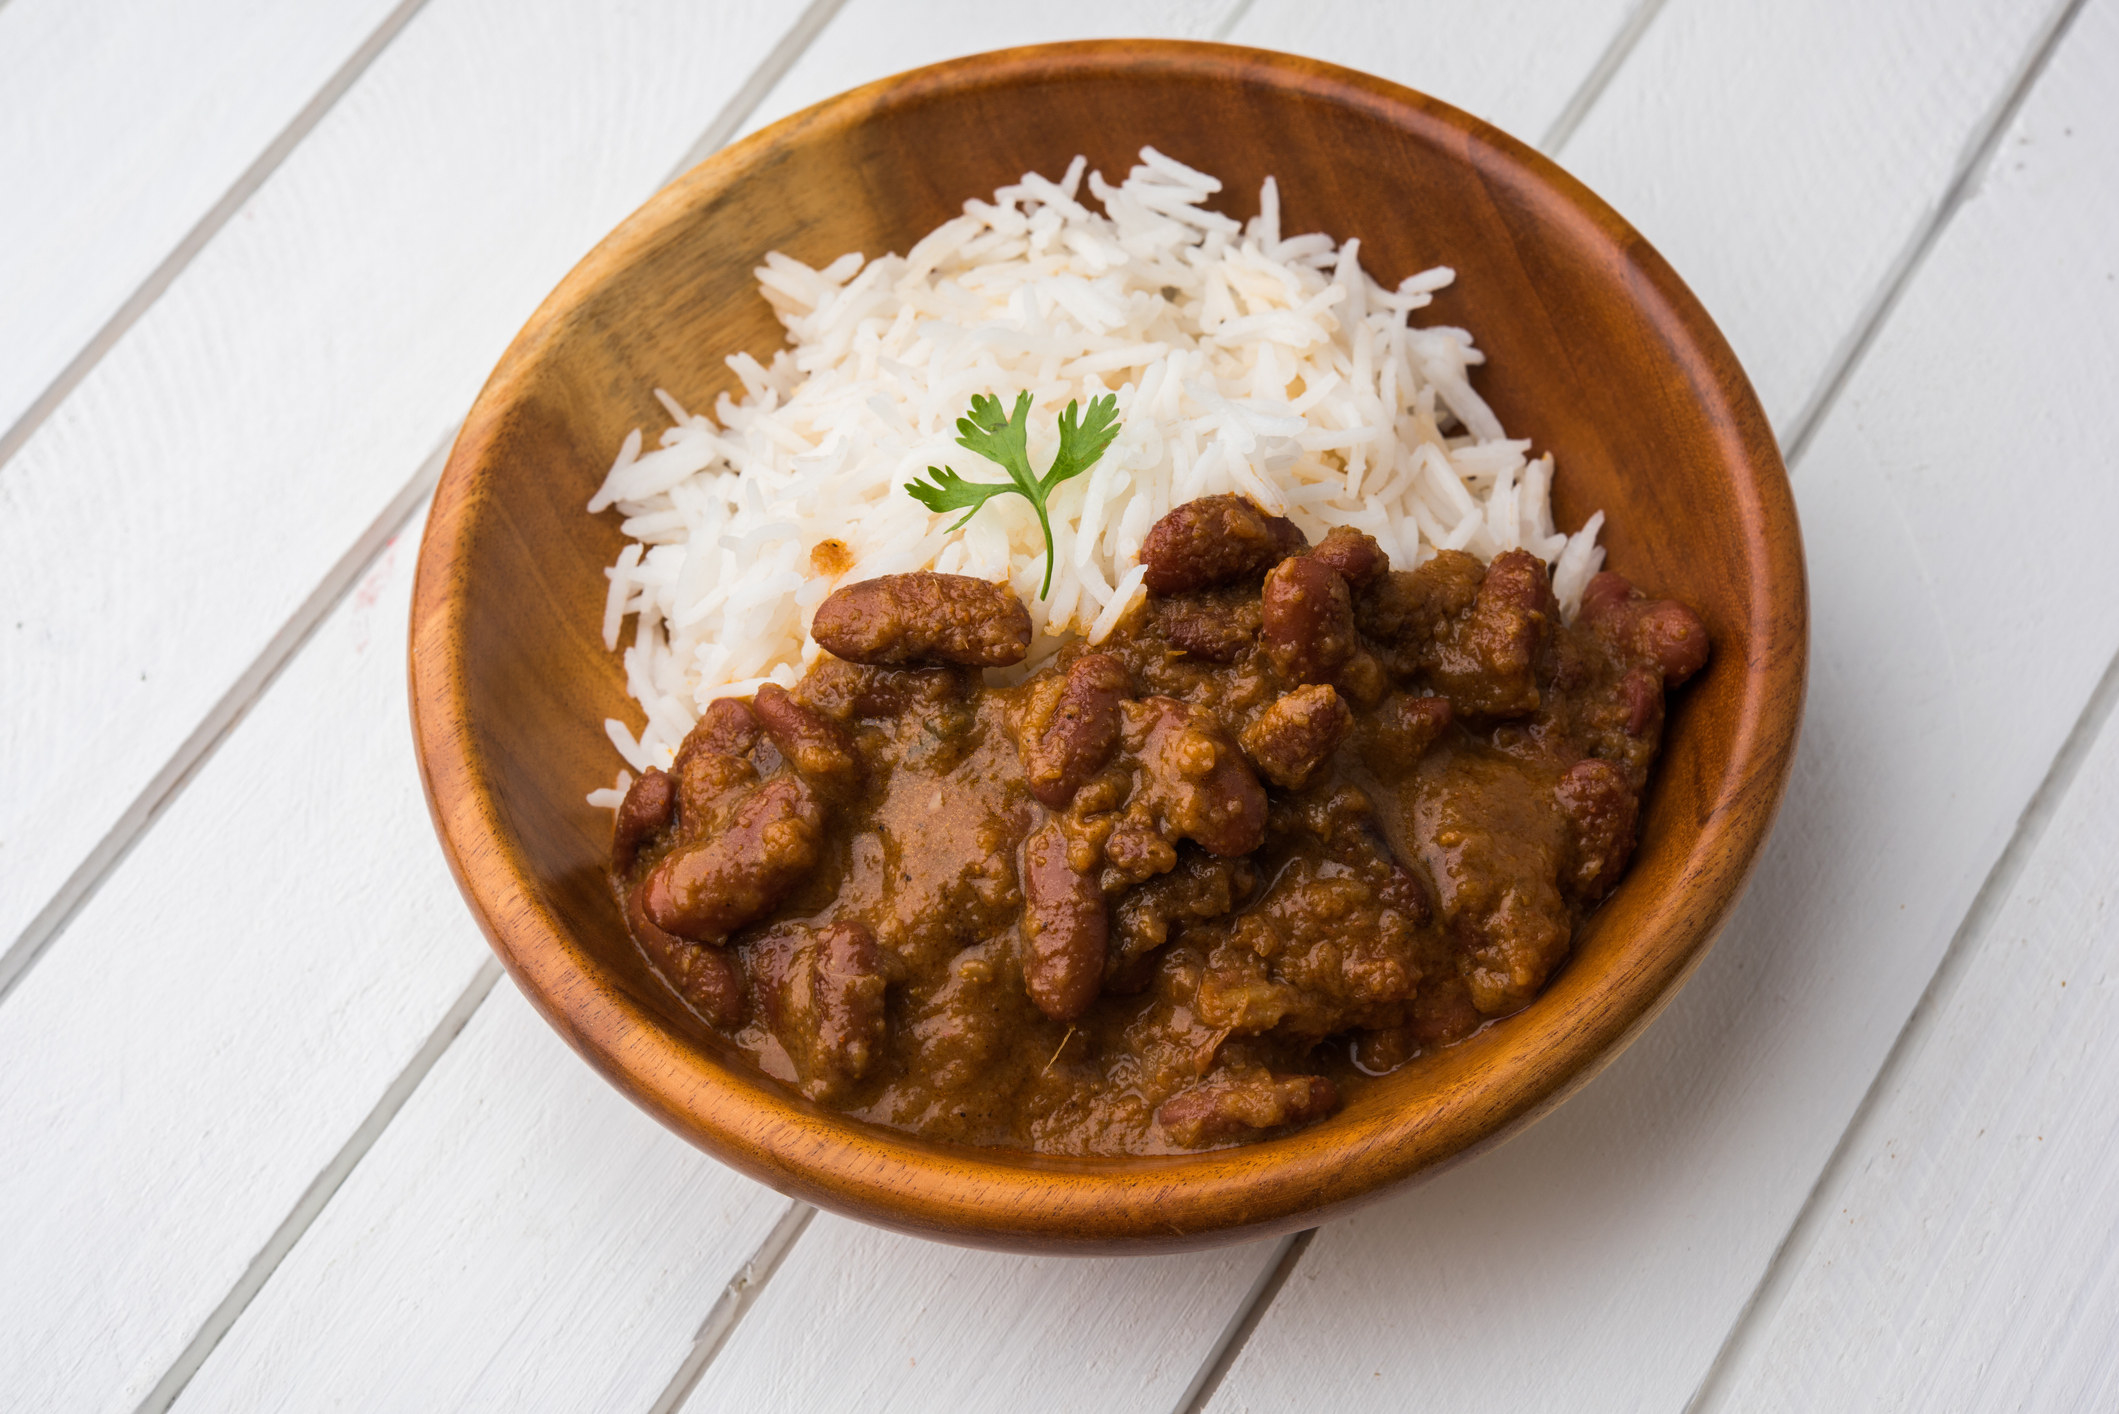 A bowl of rajma or kidney bean curry served with a side of basmati rice, garnished with a sprig of coriander